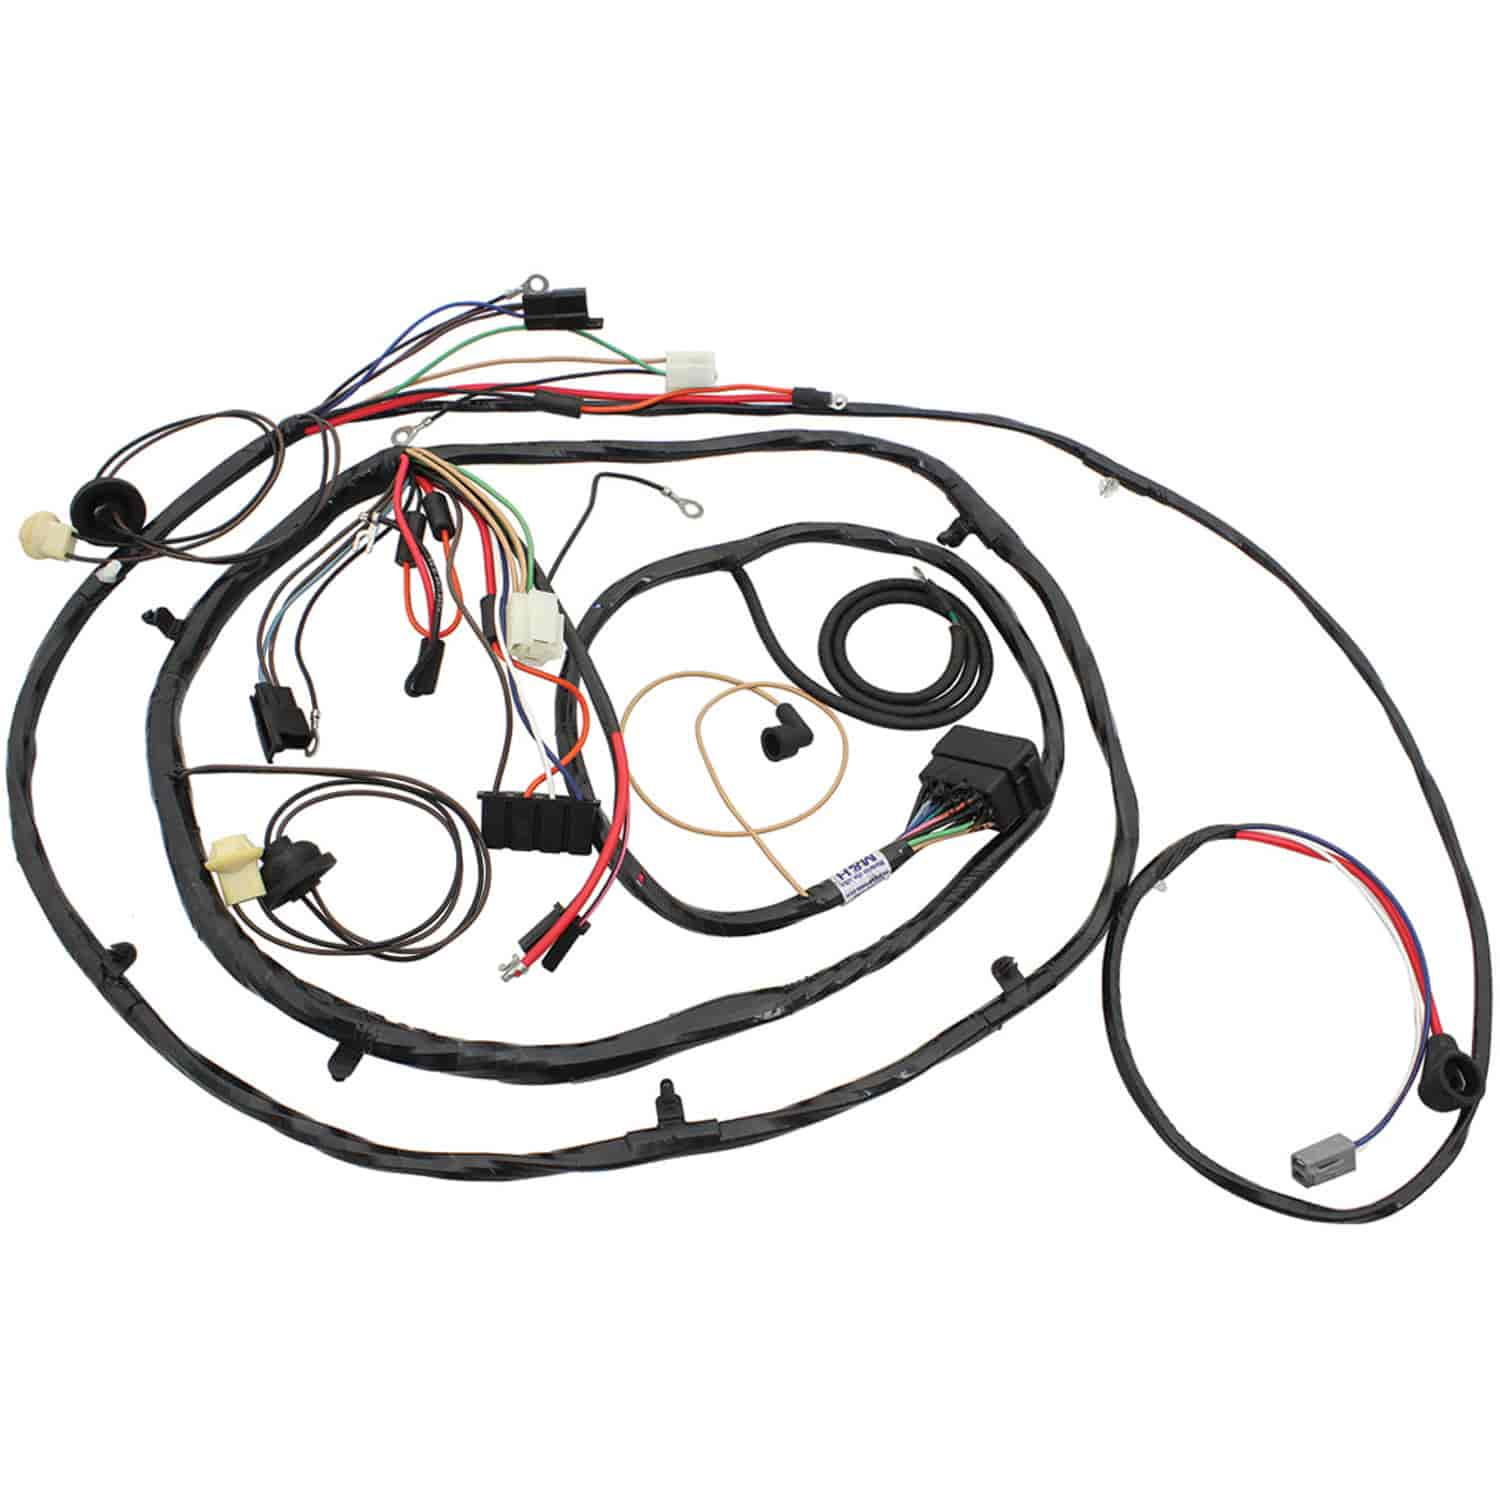 Restoparts Wiring Harness Forward Lamp Monte